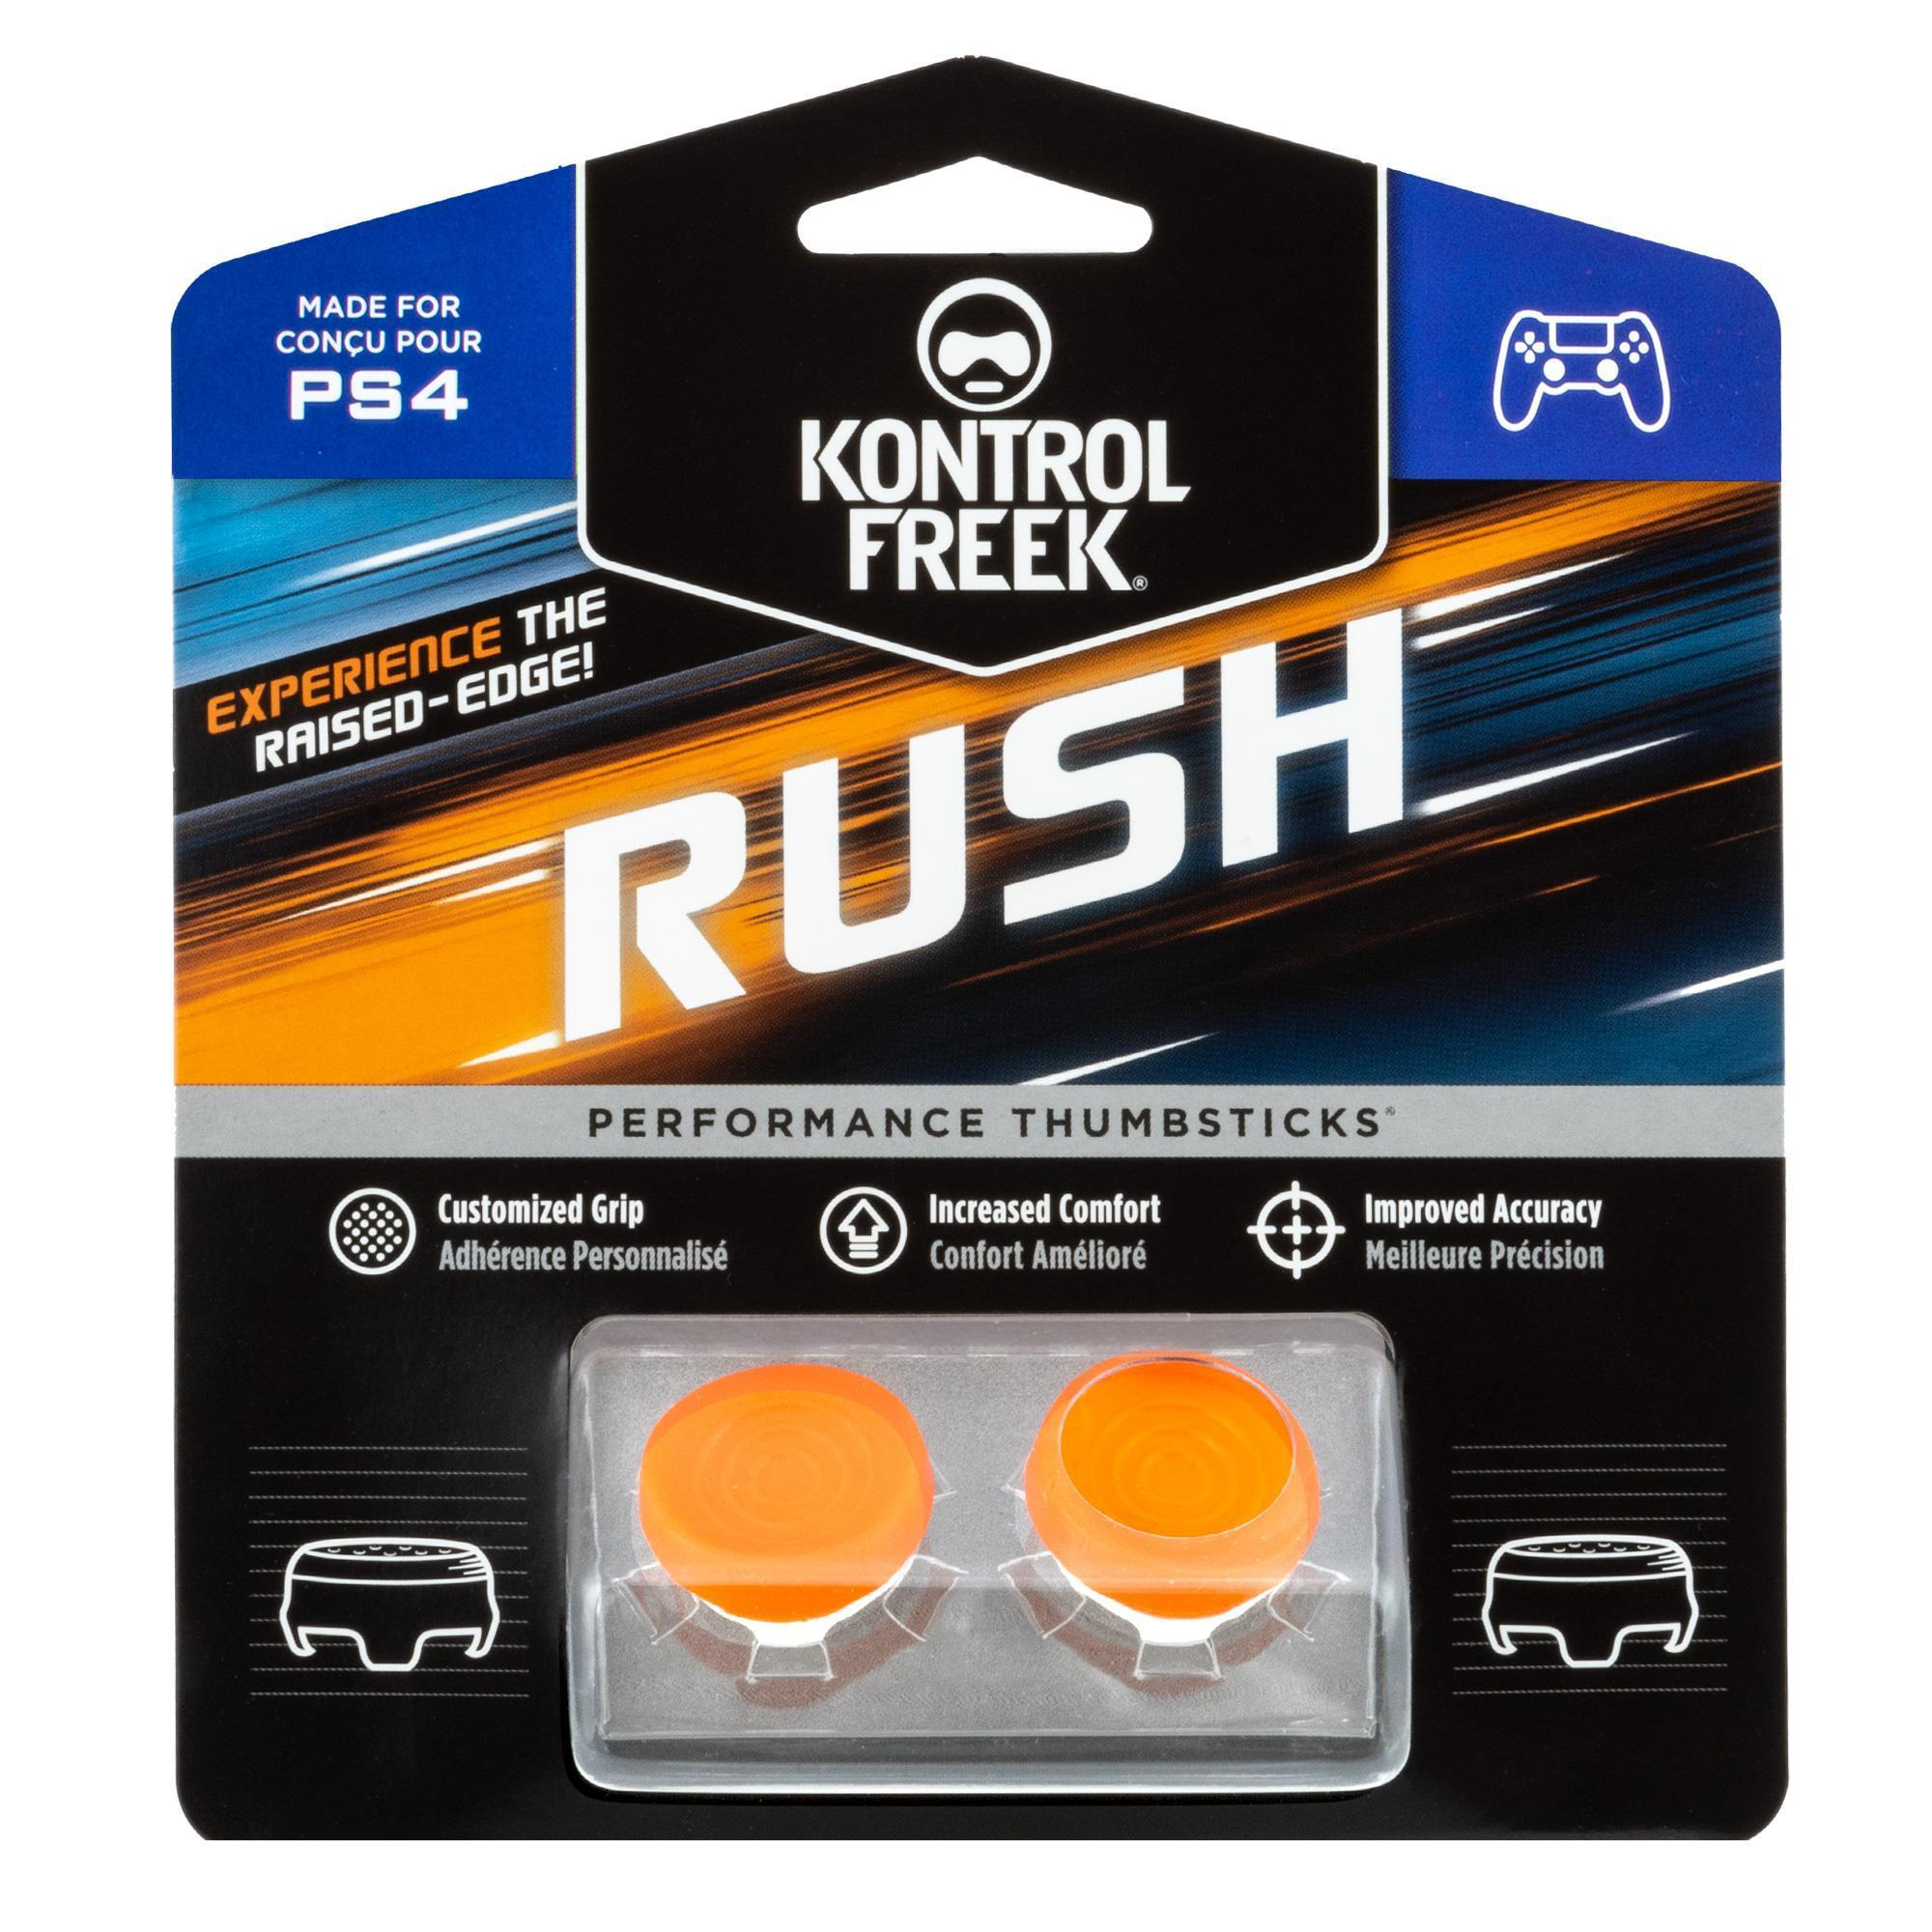 KontrolFreek Rush Performance Thumbstick for PS4